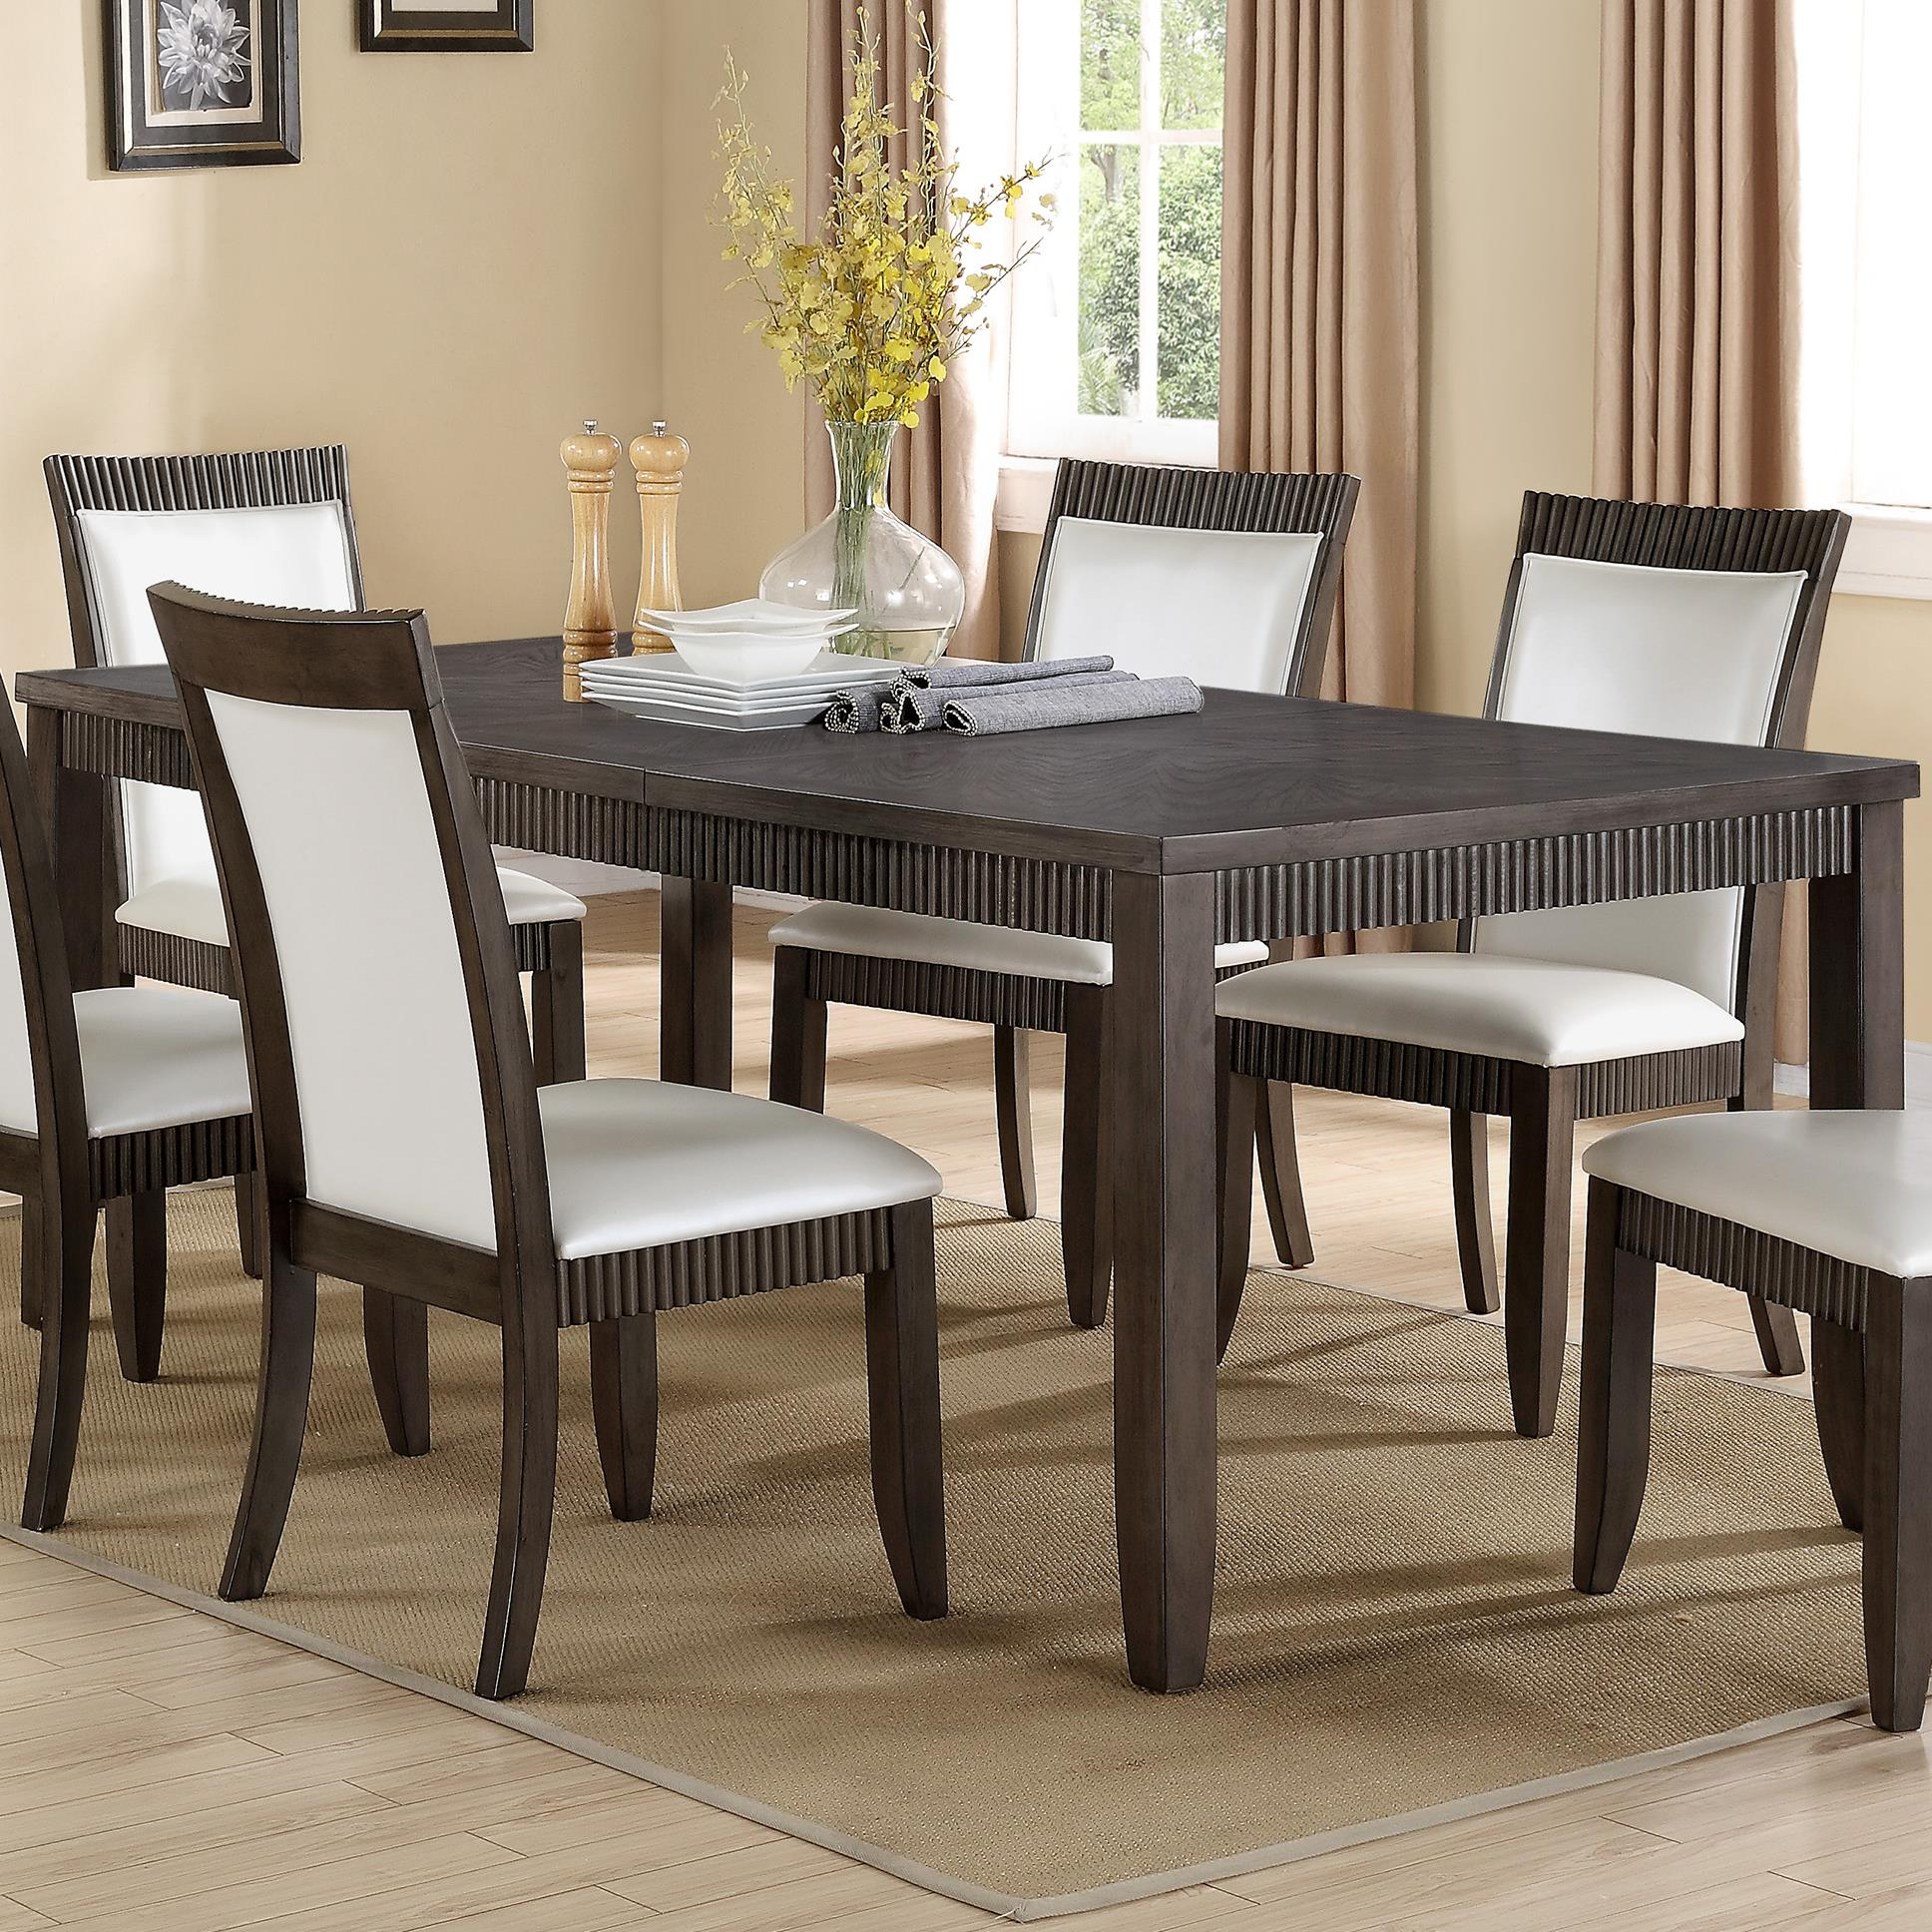 Crown Mark Ariana Dining Table - Item Number: 2368T-4278